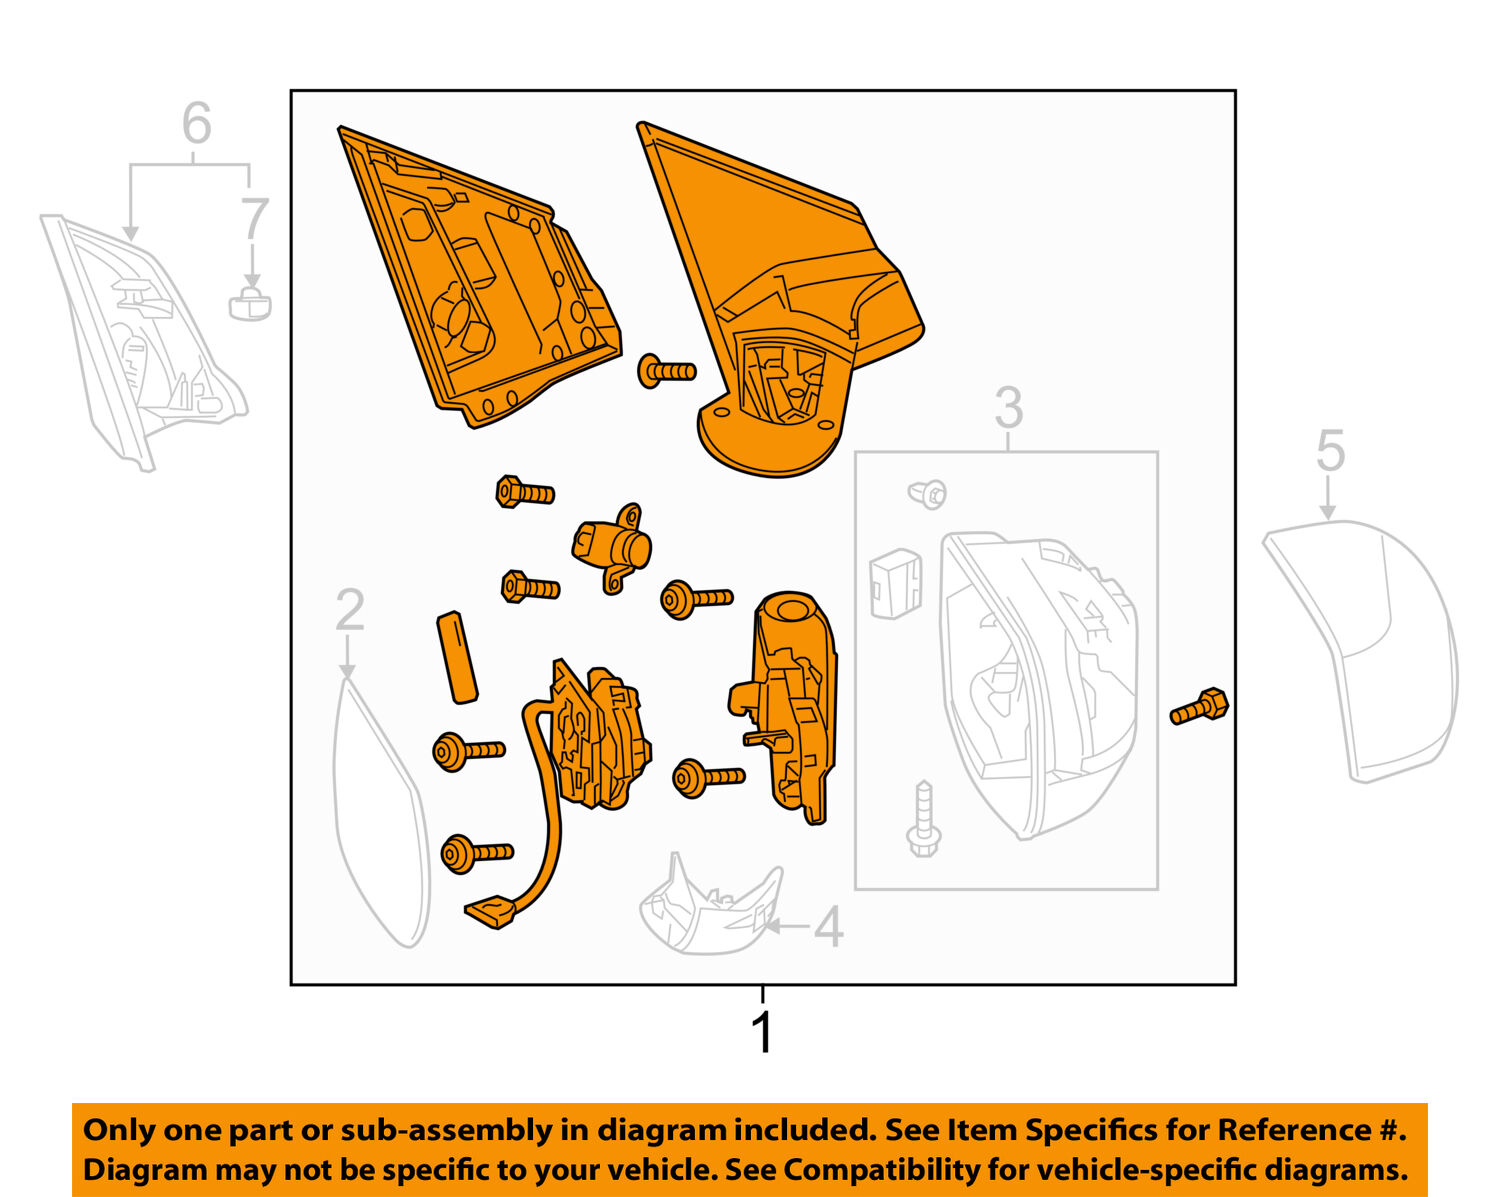 Honda Oem Cr V Outside Mirrors Front Door Mirror Assembly Right Diagram 1 Of 2only Available